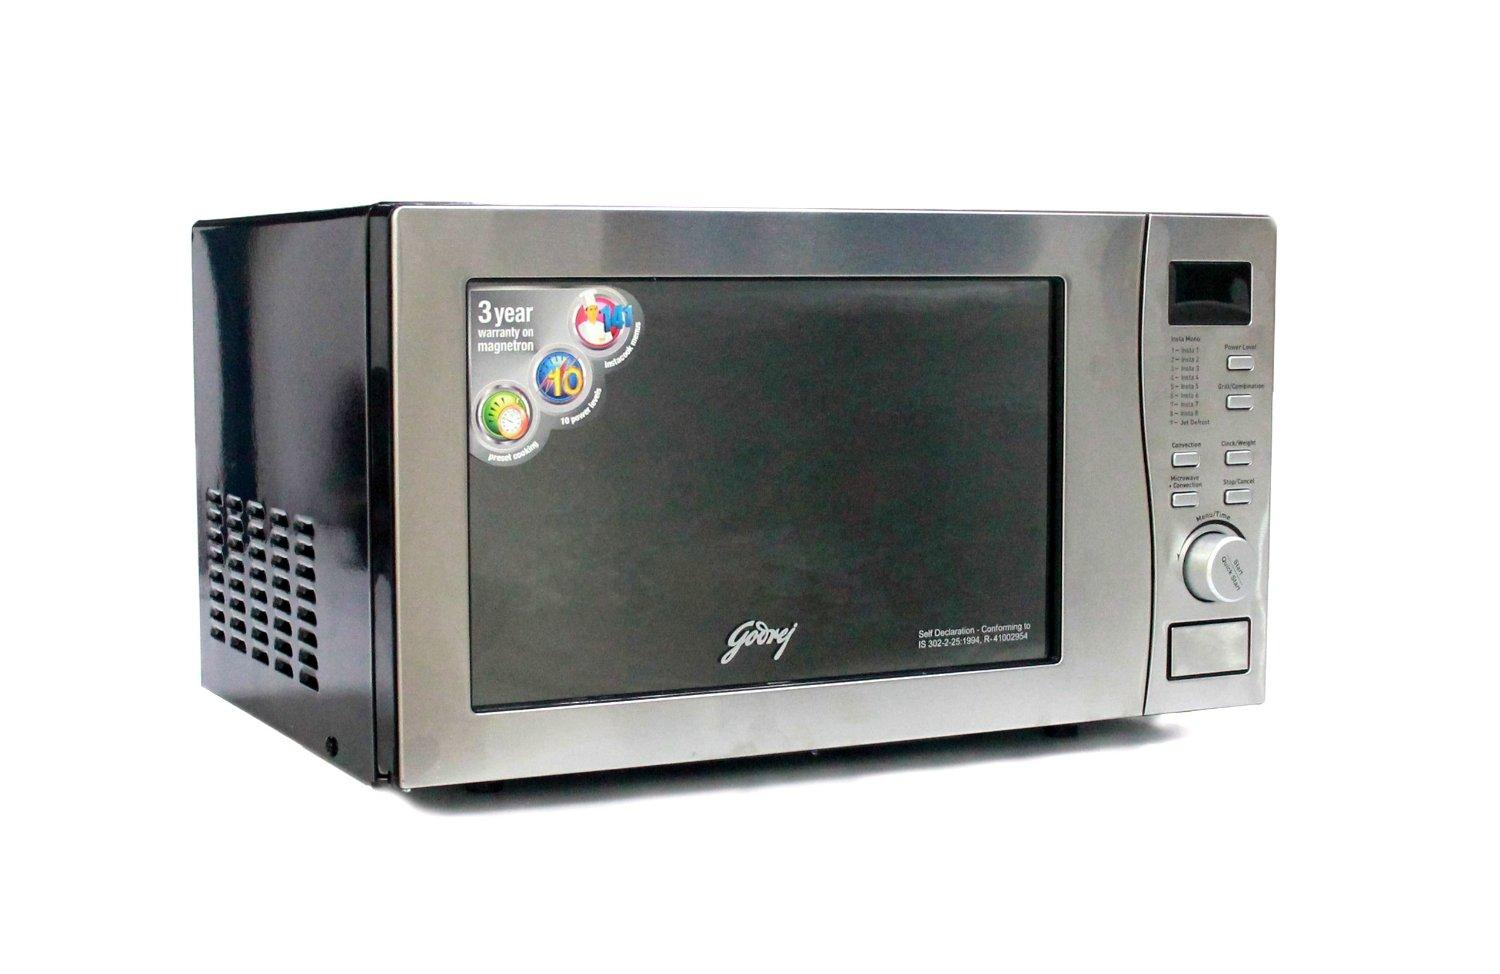 Godrej GMX 20CA5-MLZ 20 L Convection Microwave Oven Price In India, Coupons  and Specifications   amex